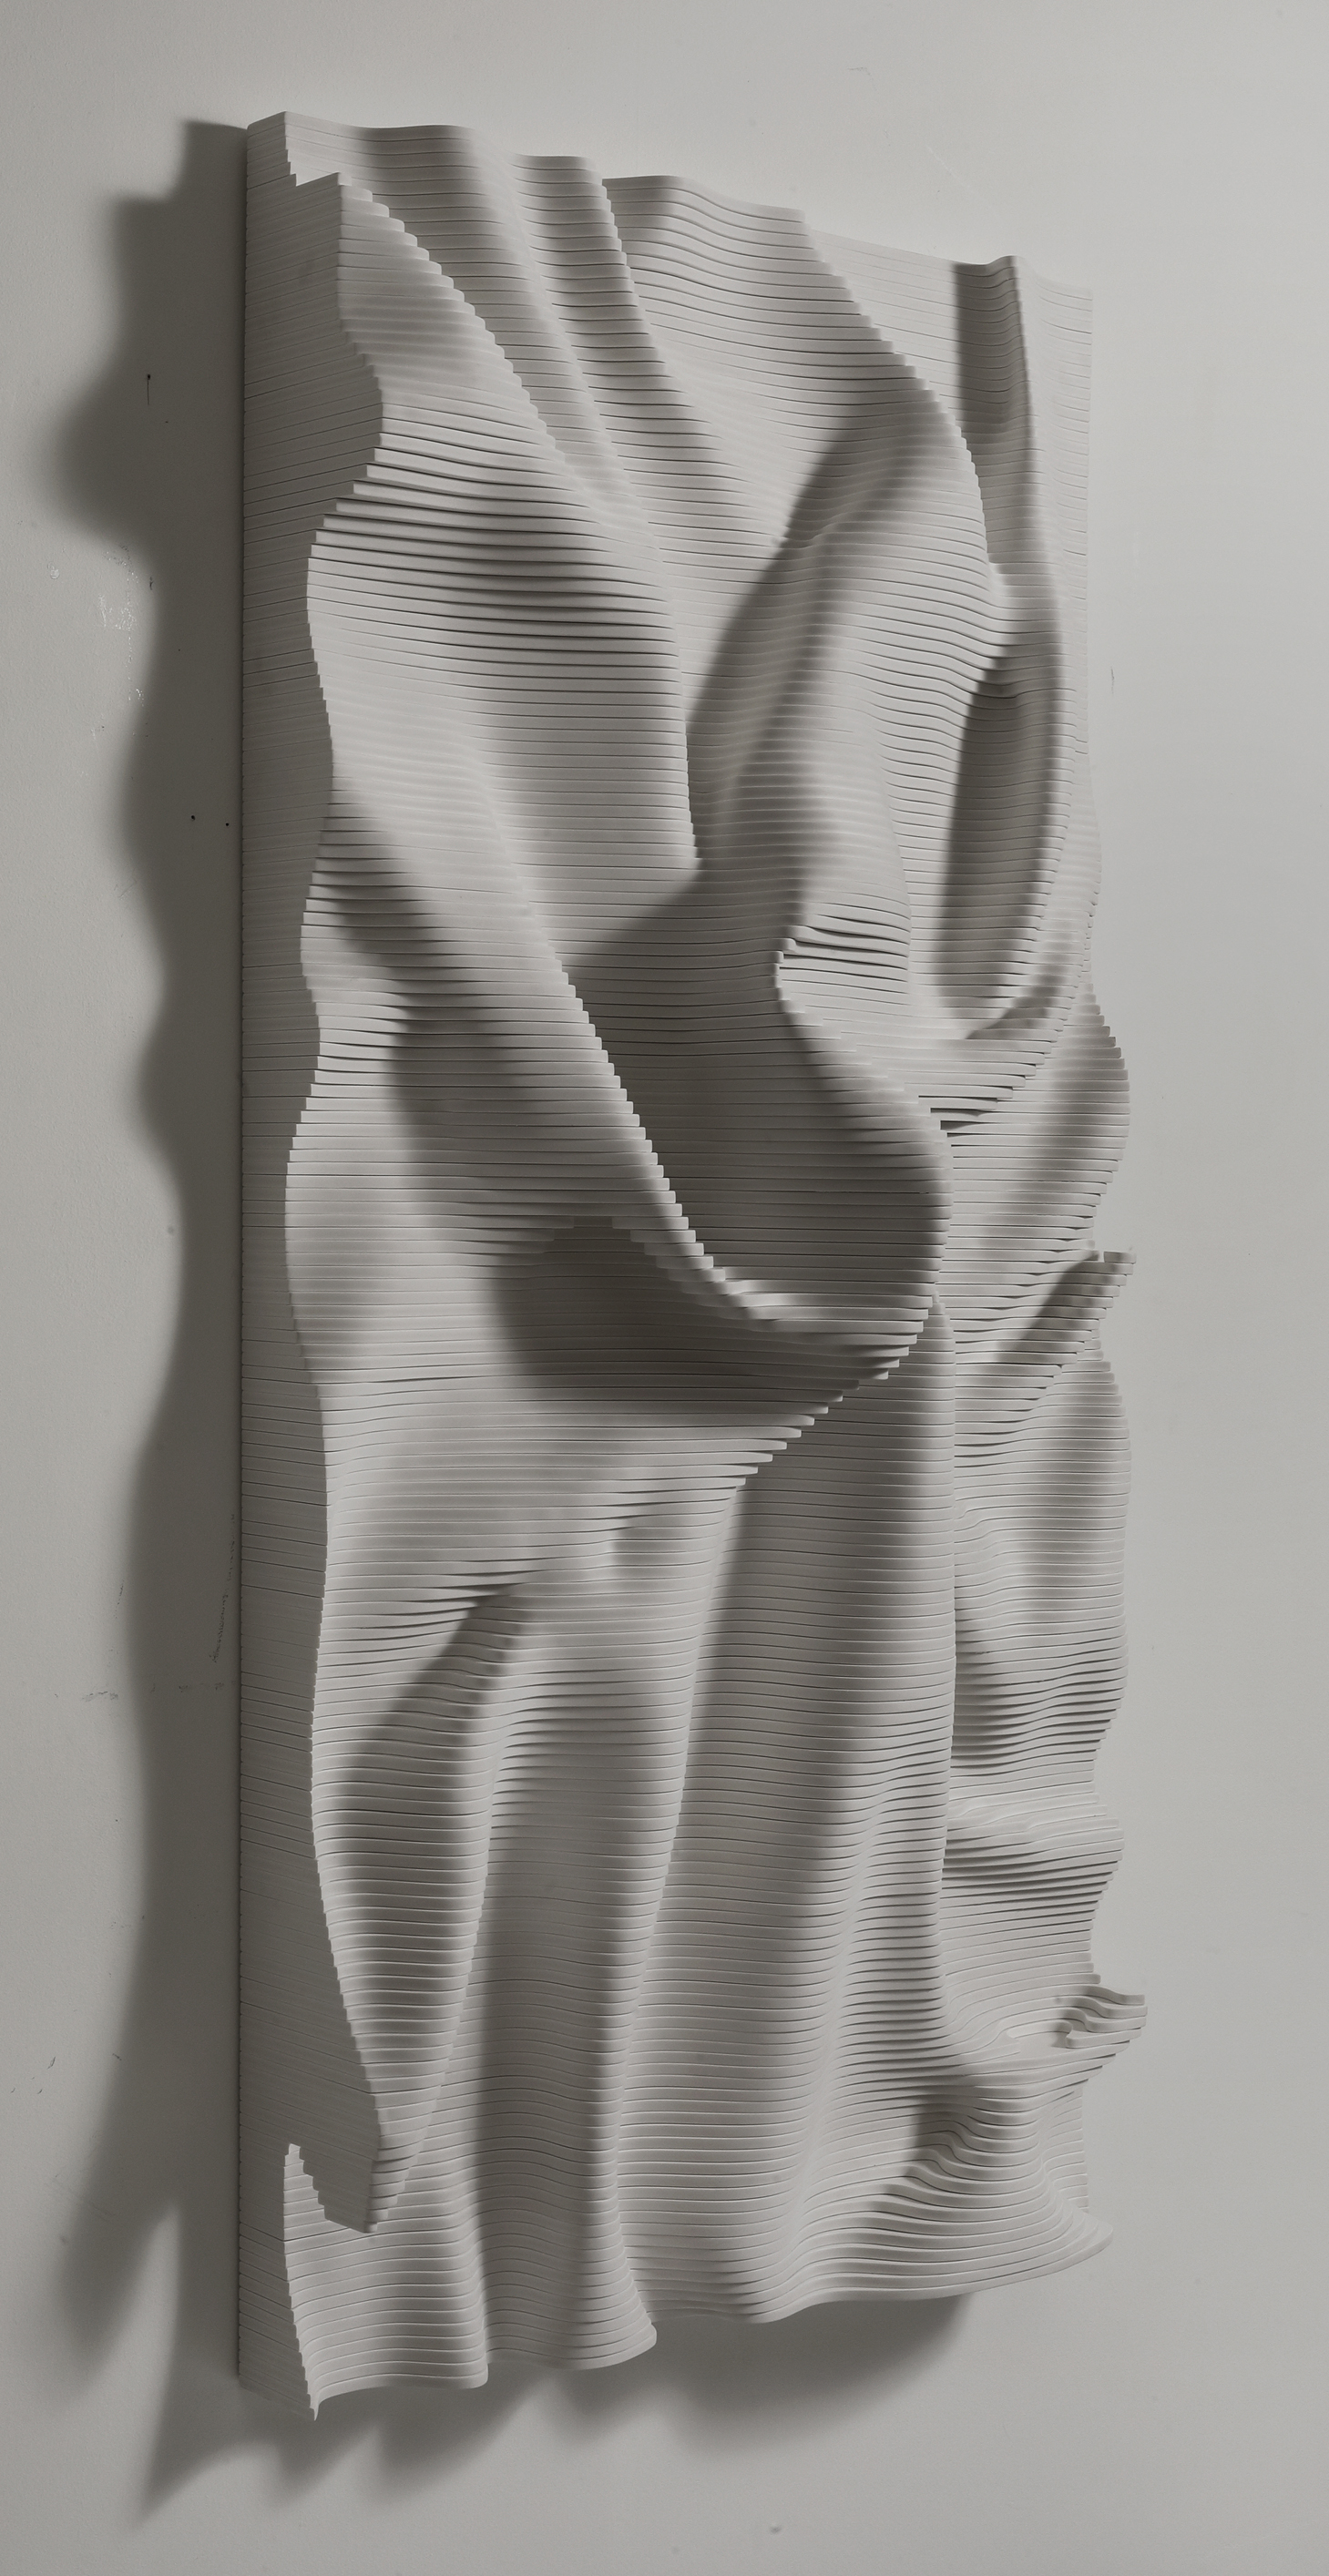 engineered wood wall hanging sculpture in black by cha jong rye